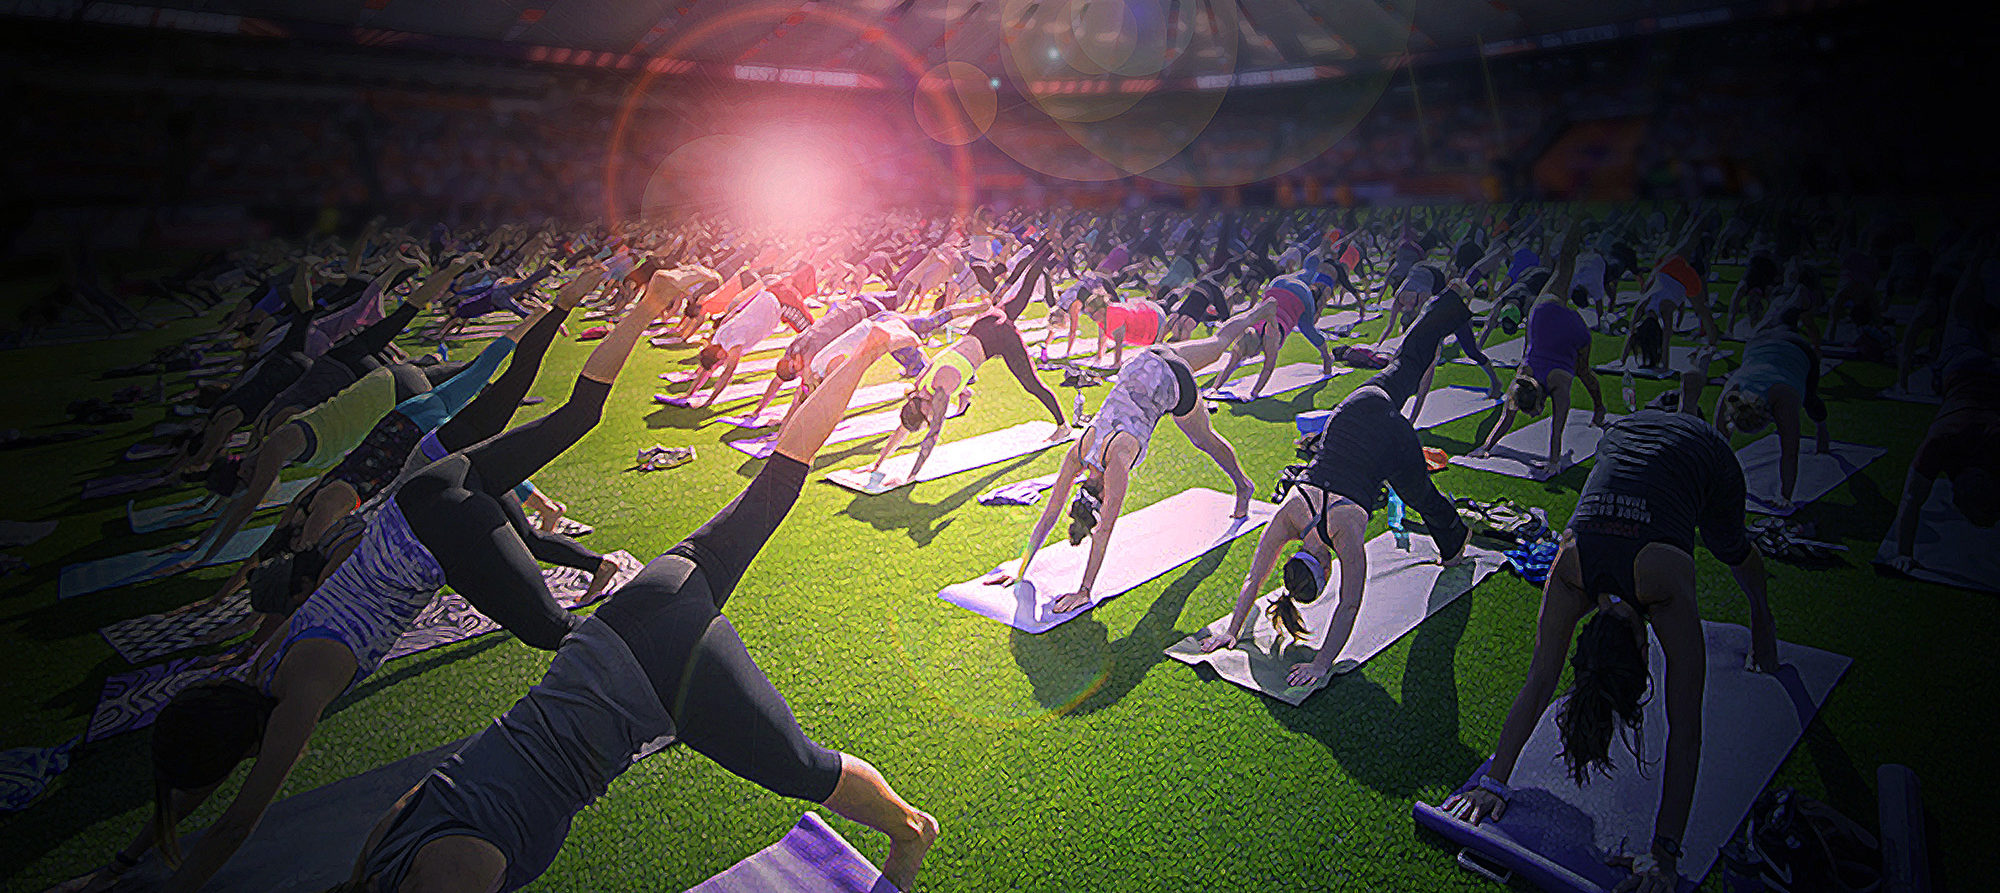 BC Lions Yoga on the Field: Saturday, August 24th - BC Lions